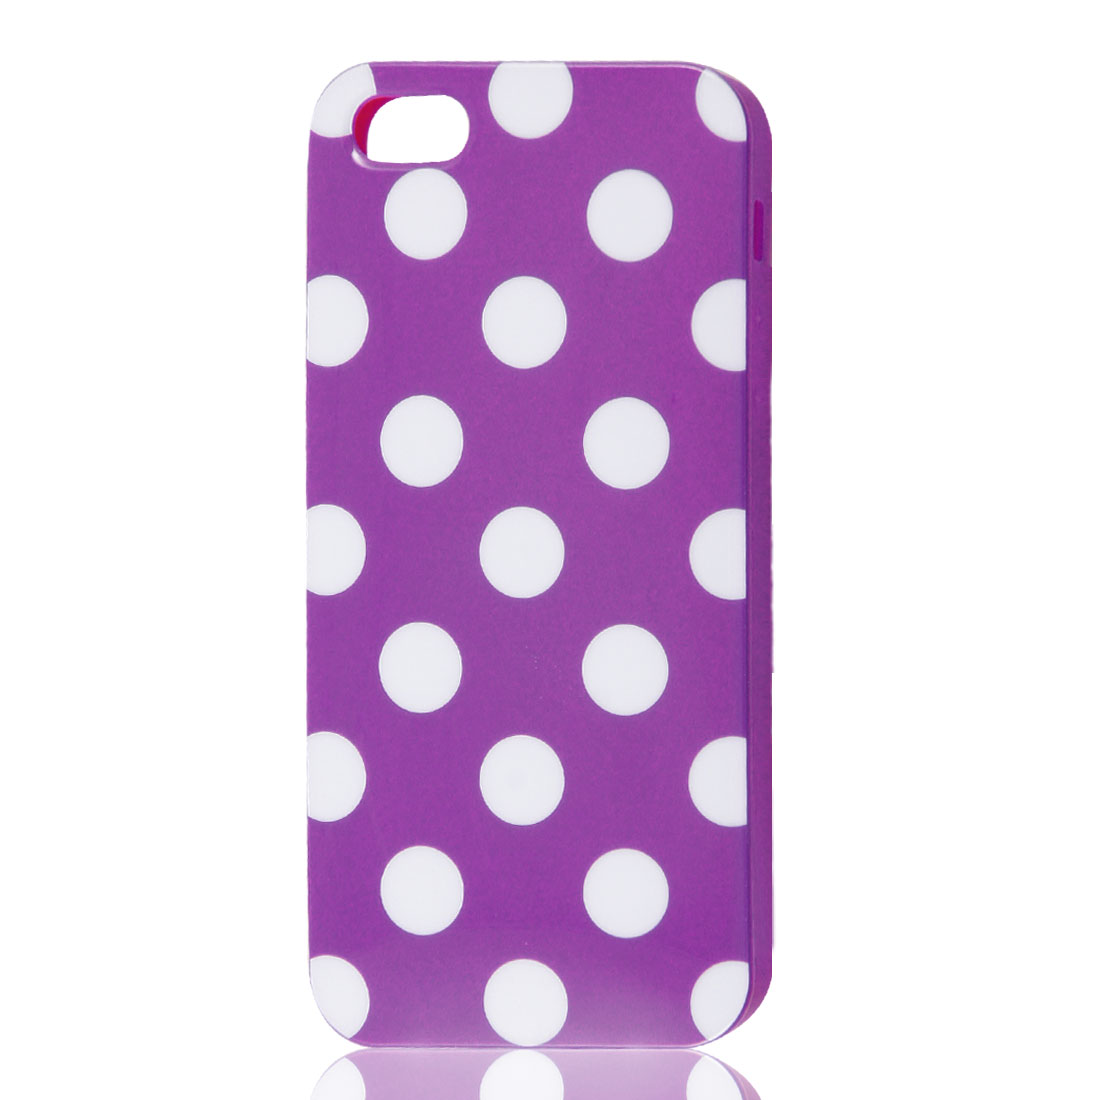 White Polka Dots Purple Soft Plastic Case Cover for Apple iPhone 5 5G